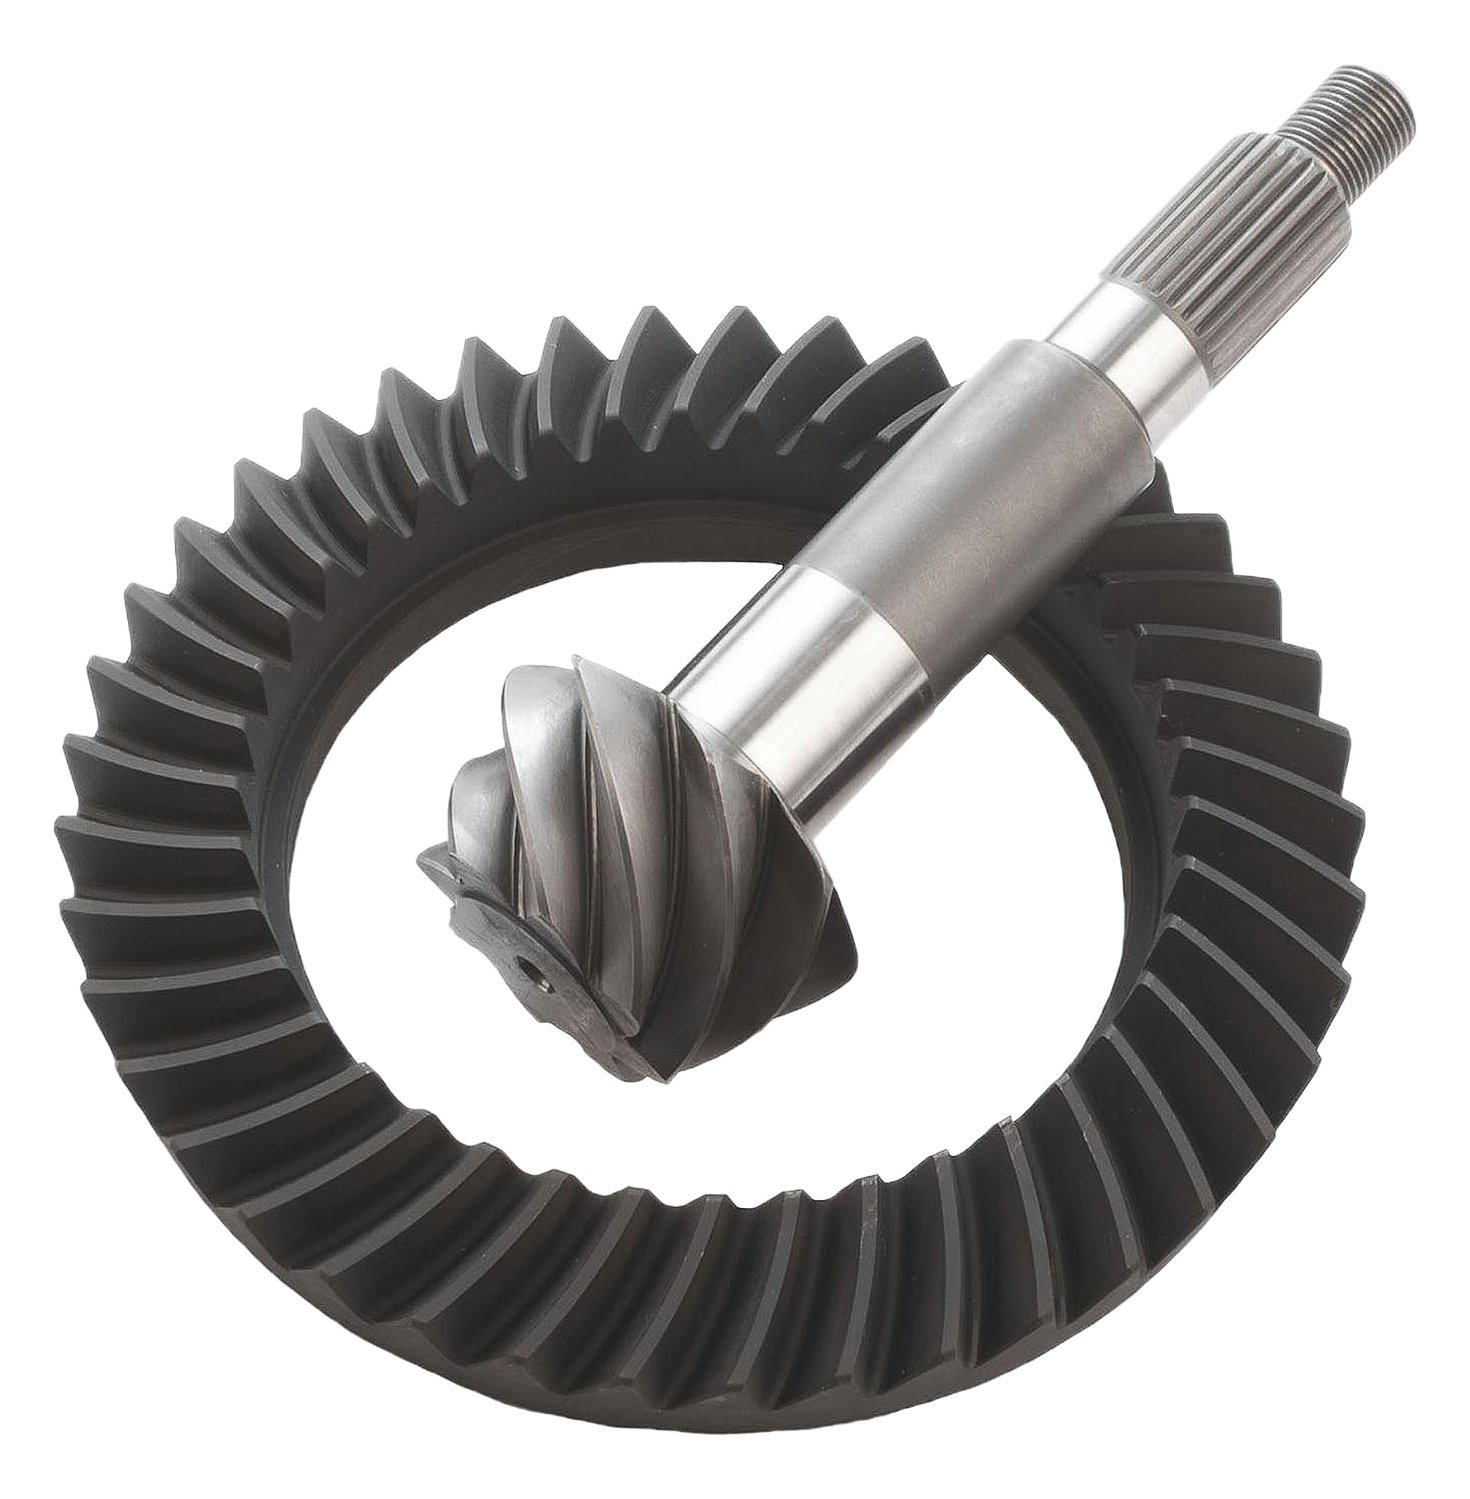 ExCel D44354 Ring and Pinion (DANA 44 3.54), 1 Pack